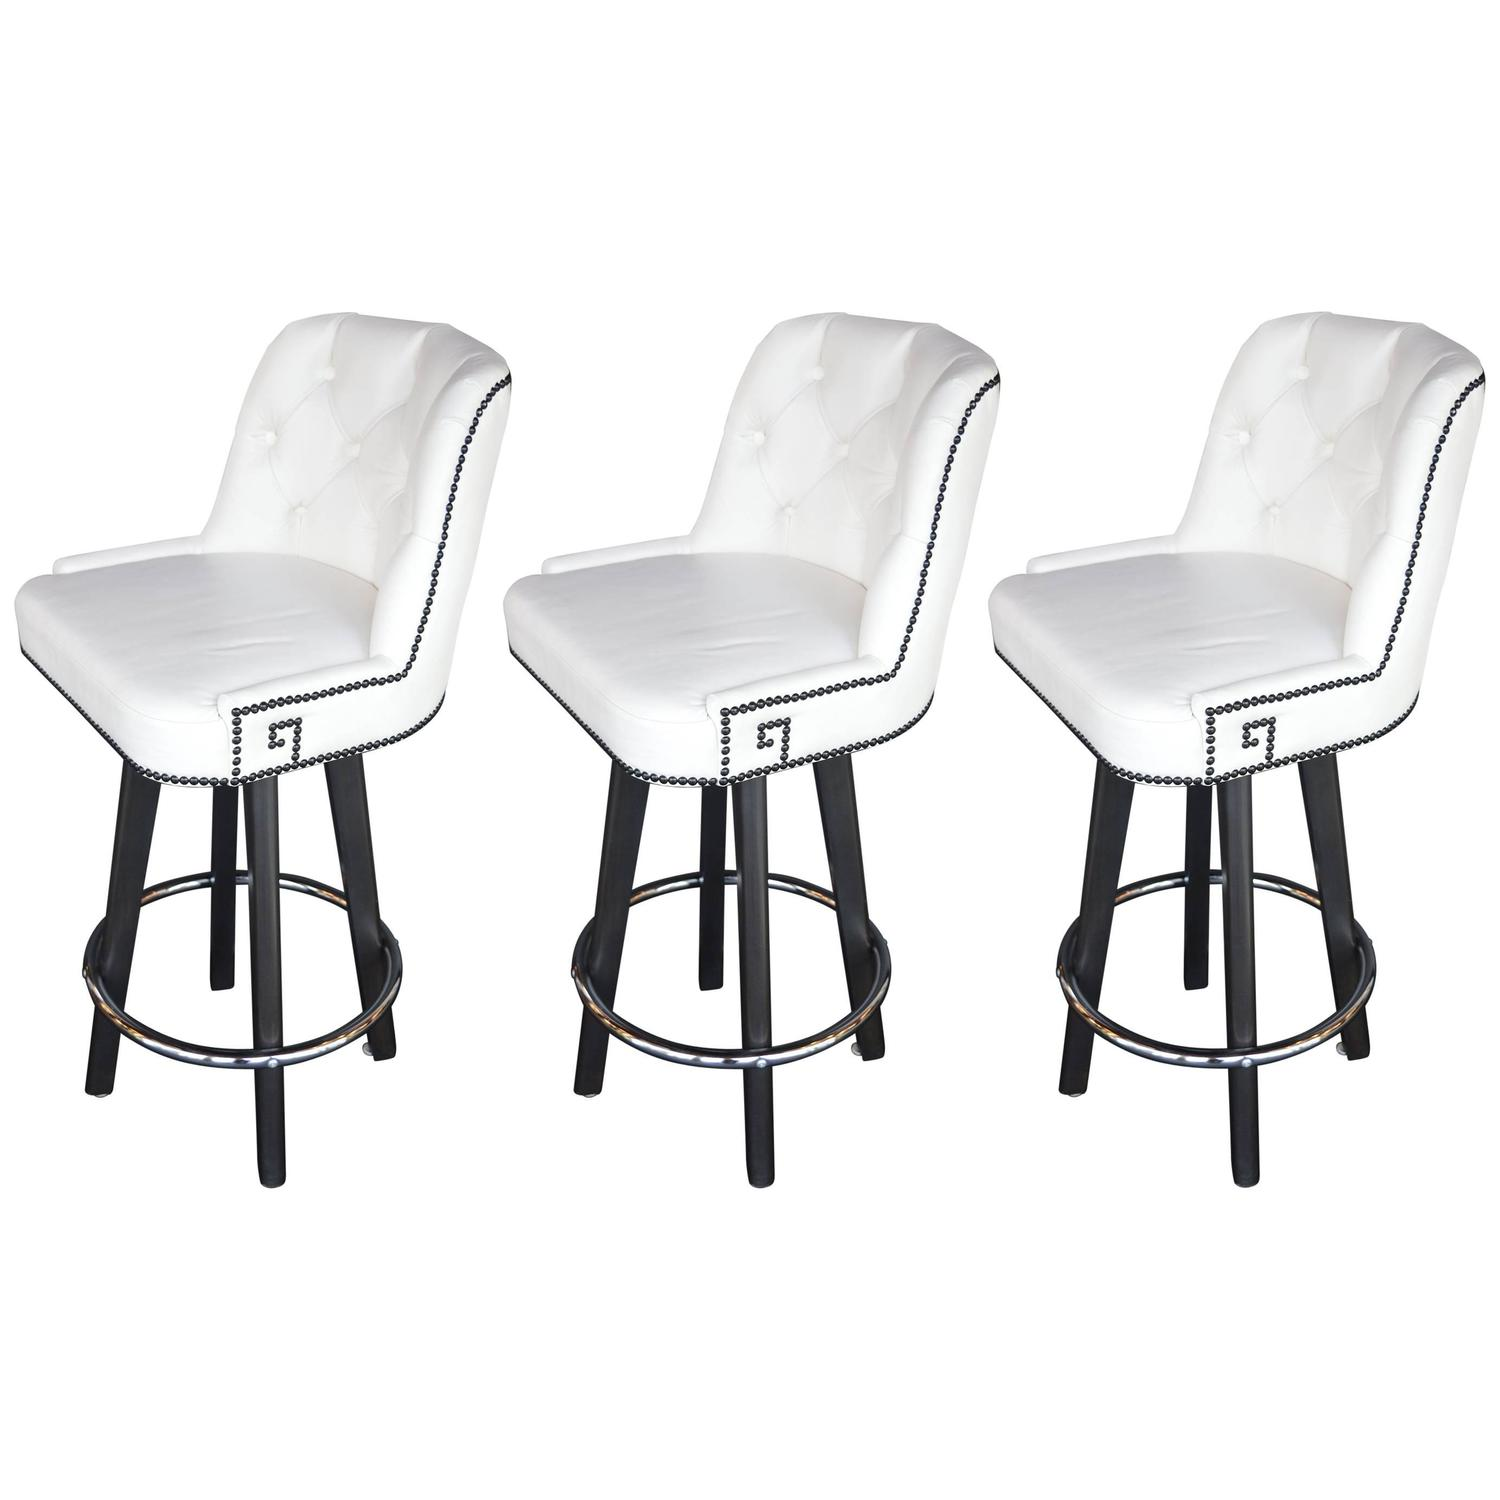 white leather bar chair dining chairs set of 4 india three stools at 1stdibs